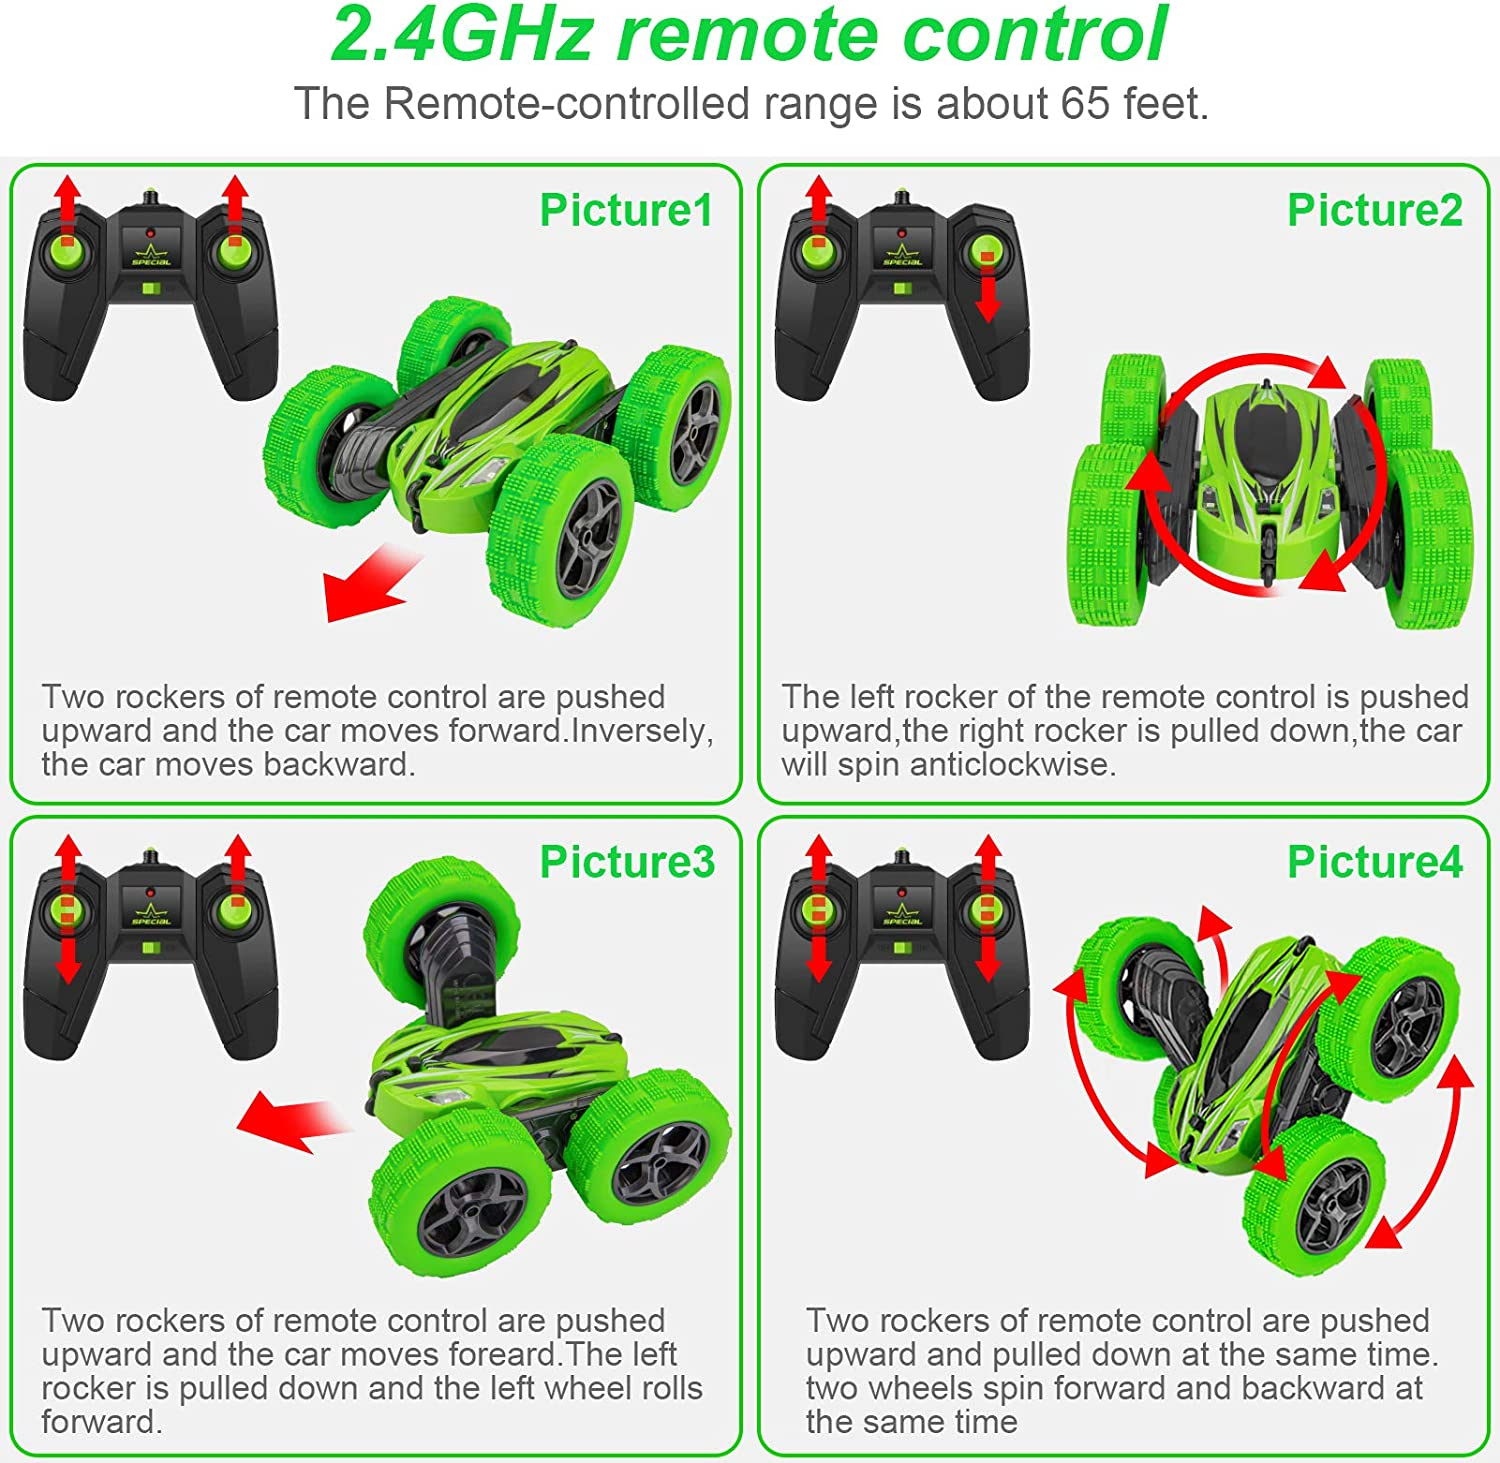 High Speed 2.4Ghz Remote Control Race Car Double Sided 360 Degree Rotating Tumbling Rechargeable Car Xmas Birthday Toy Cars Gift for Boys//Girls,Kids Green Remote Control Car,RC Stunt Car Toy